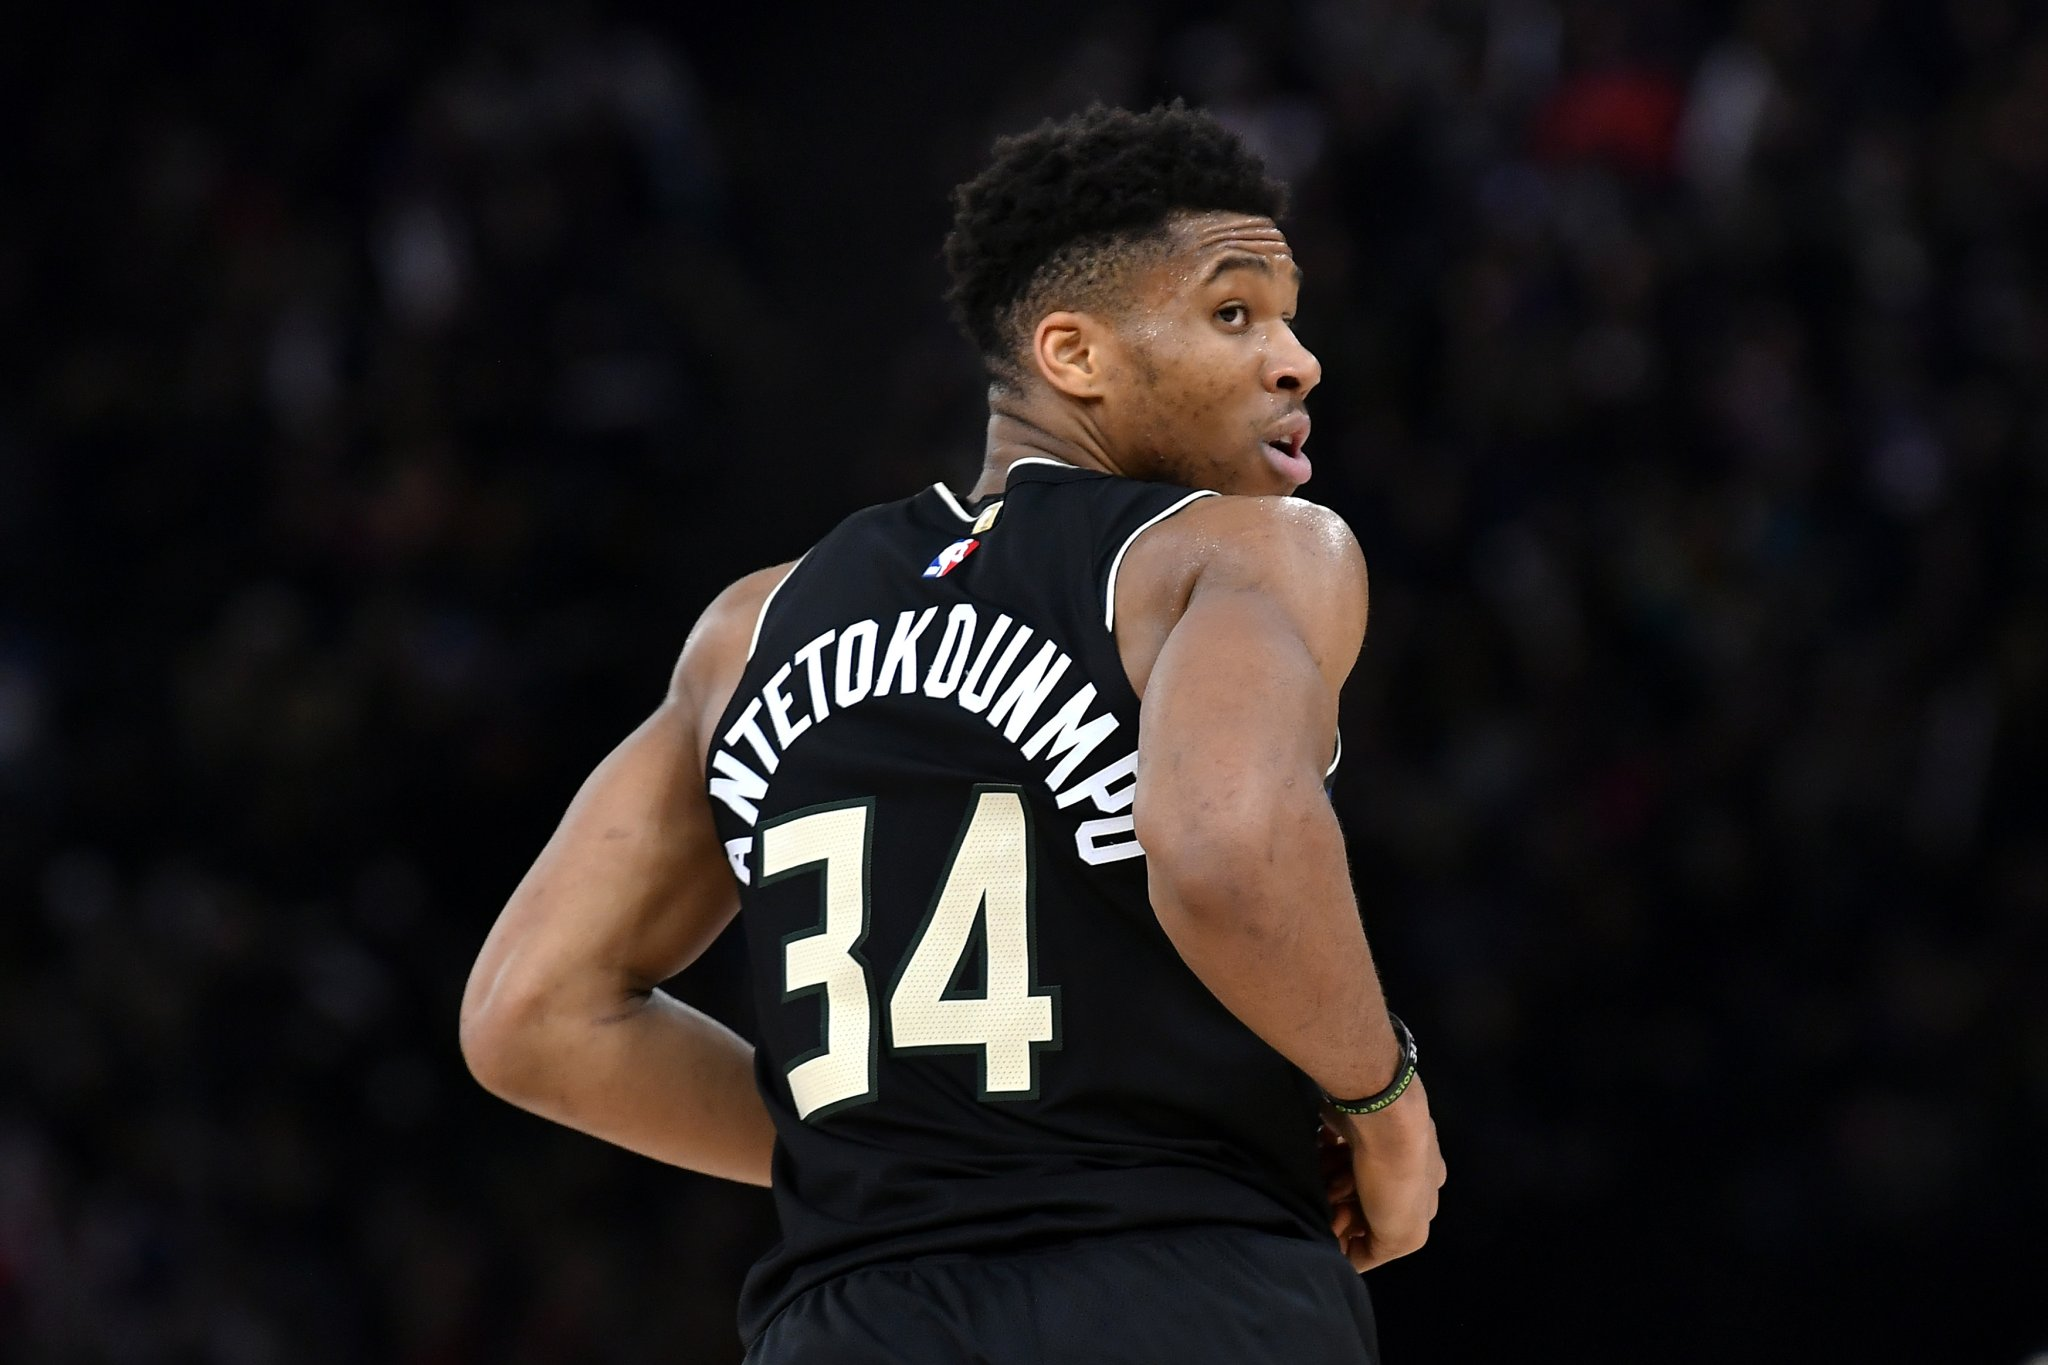 Giannis Antetokounmpo Reportedly Met With Bucks Ownership To Discuss Future On Same Day He Unfollowed Teammates On Instagram - BroBible